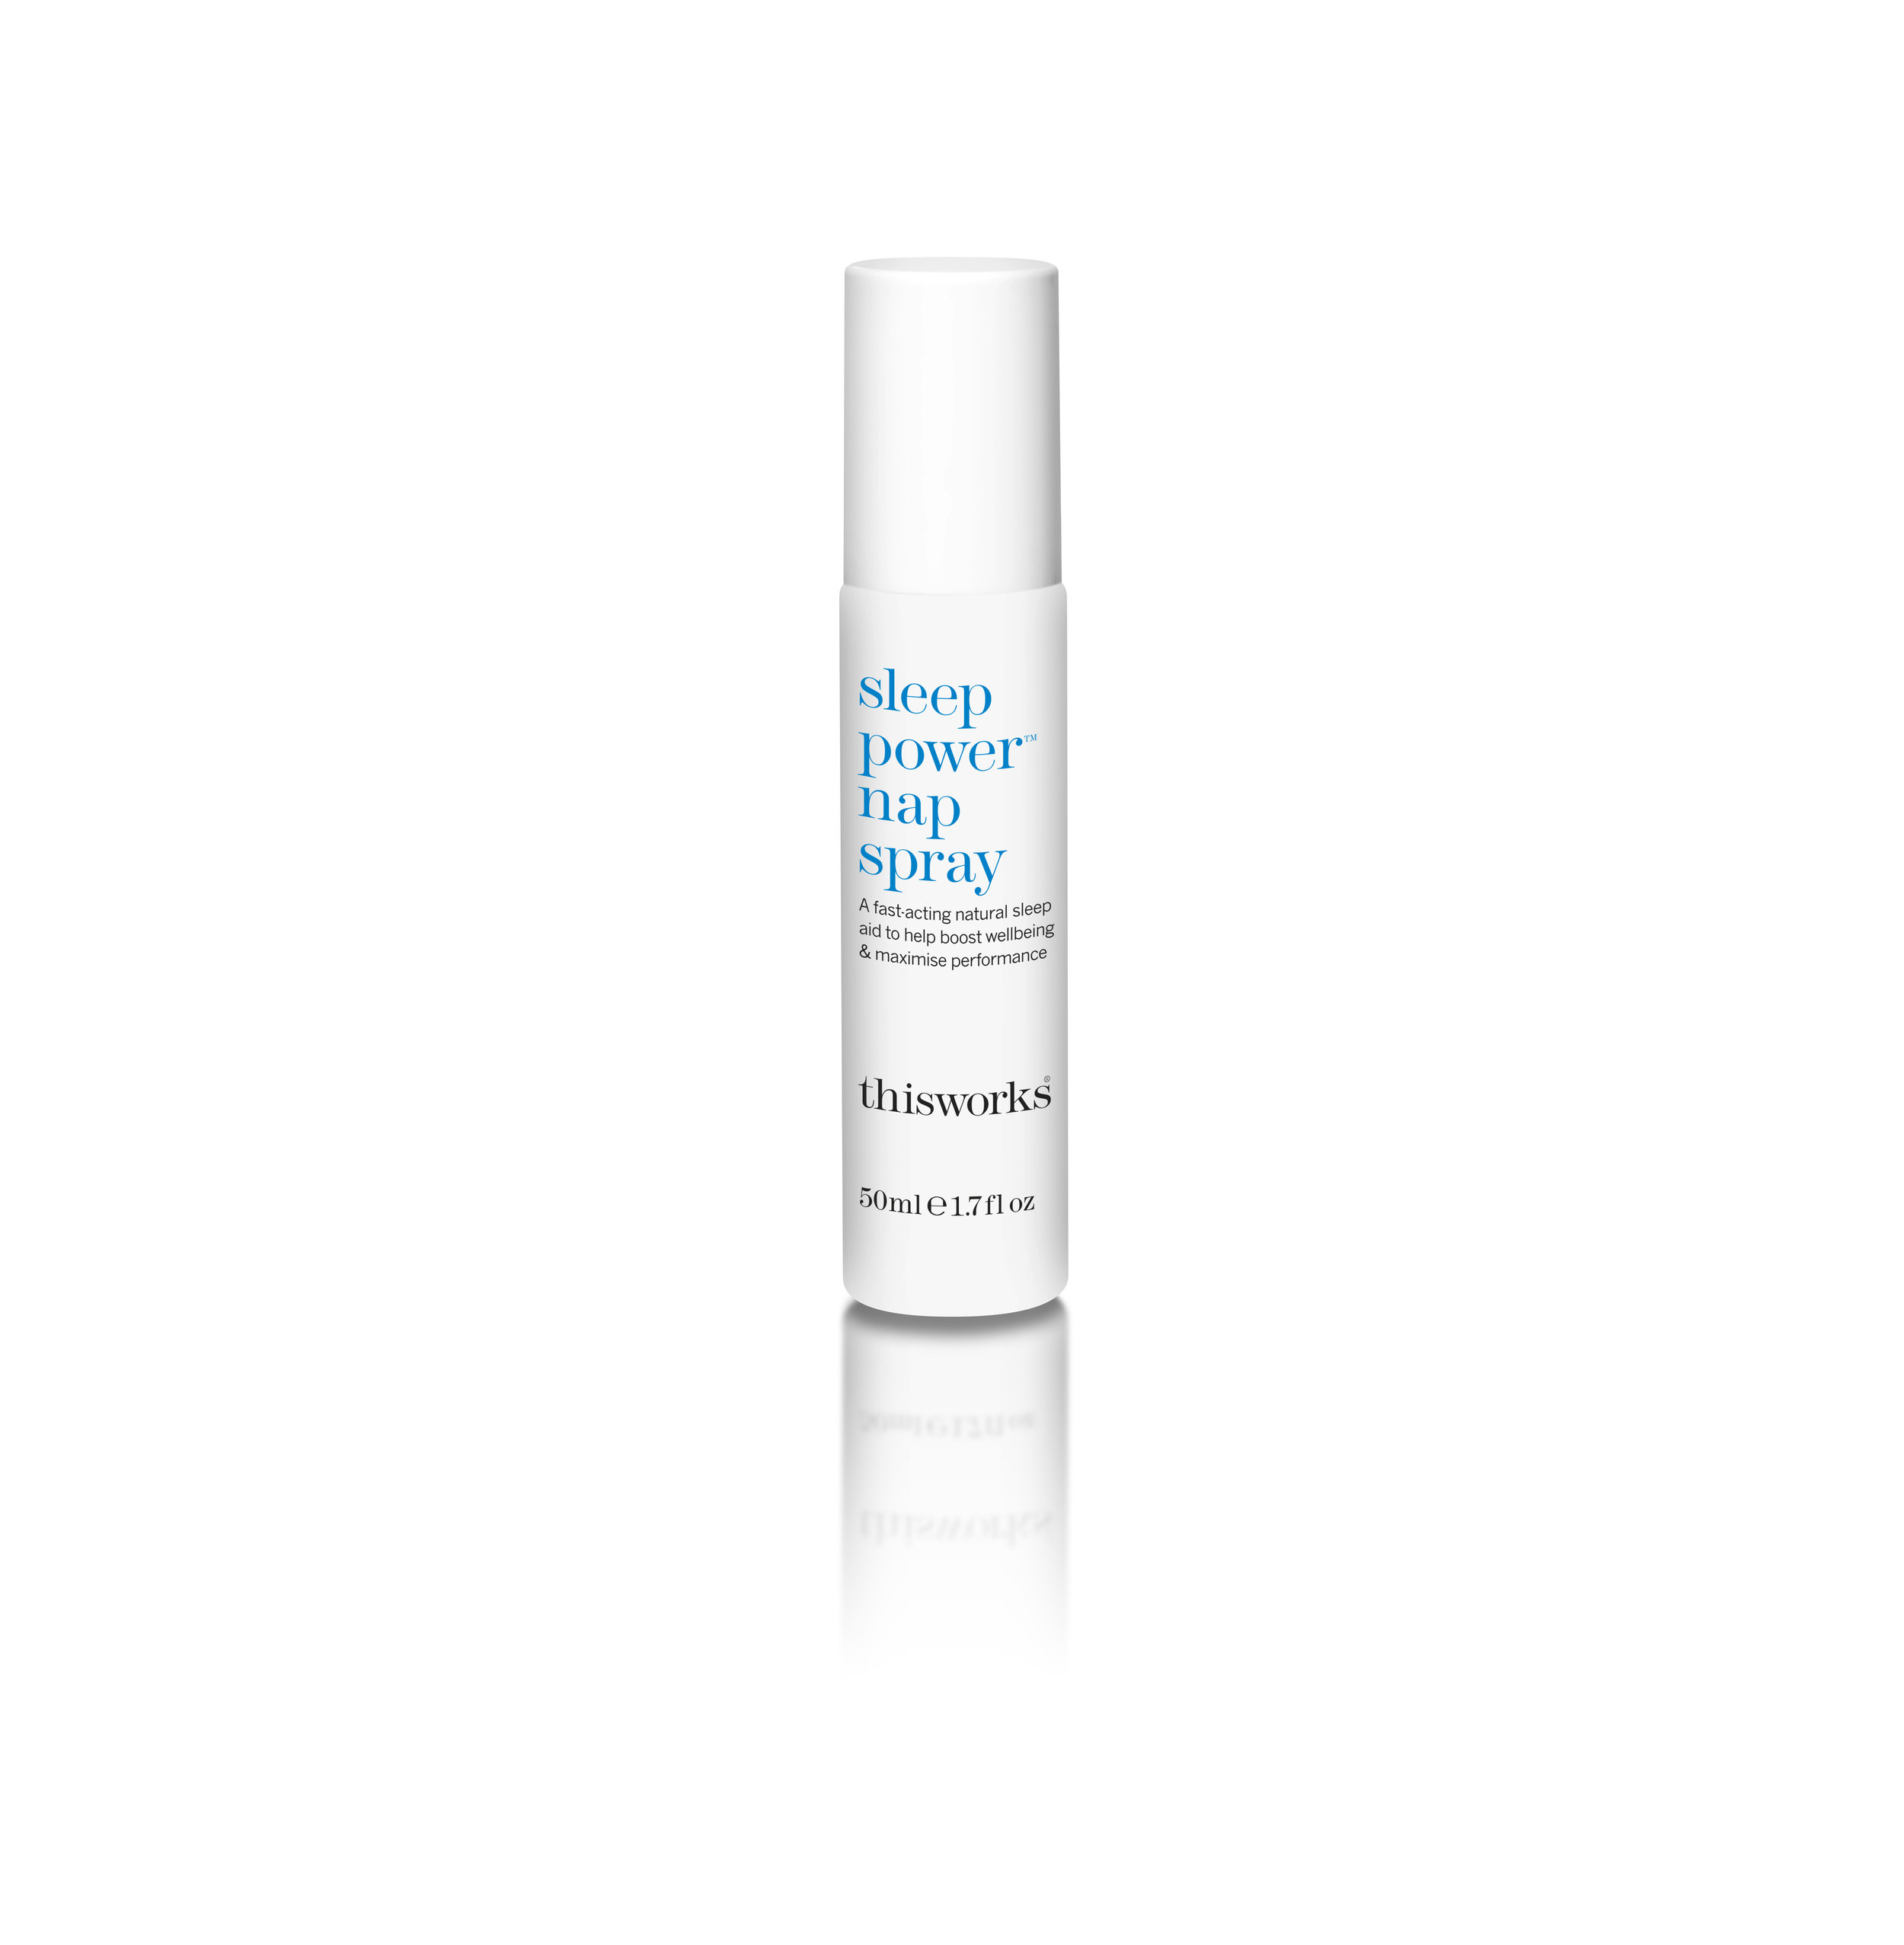 This Works Sleep Nap Spray, Available at ThisWorks